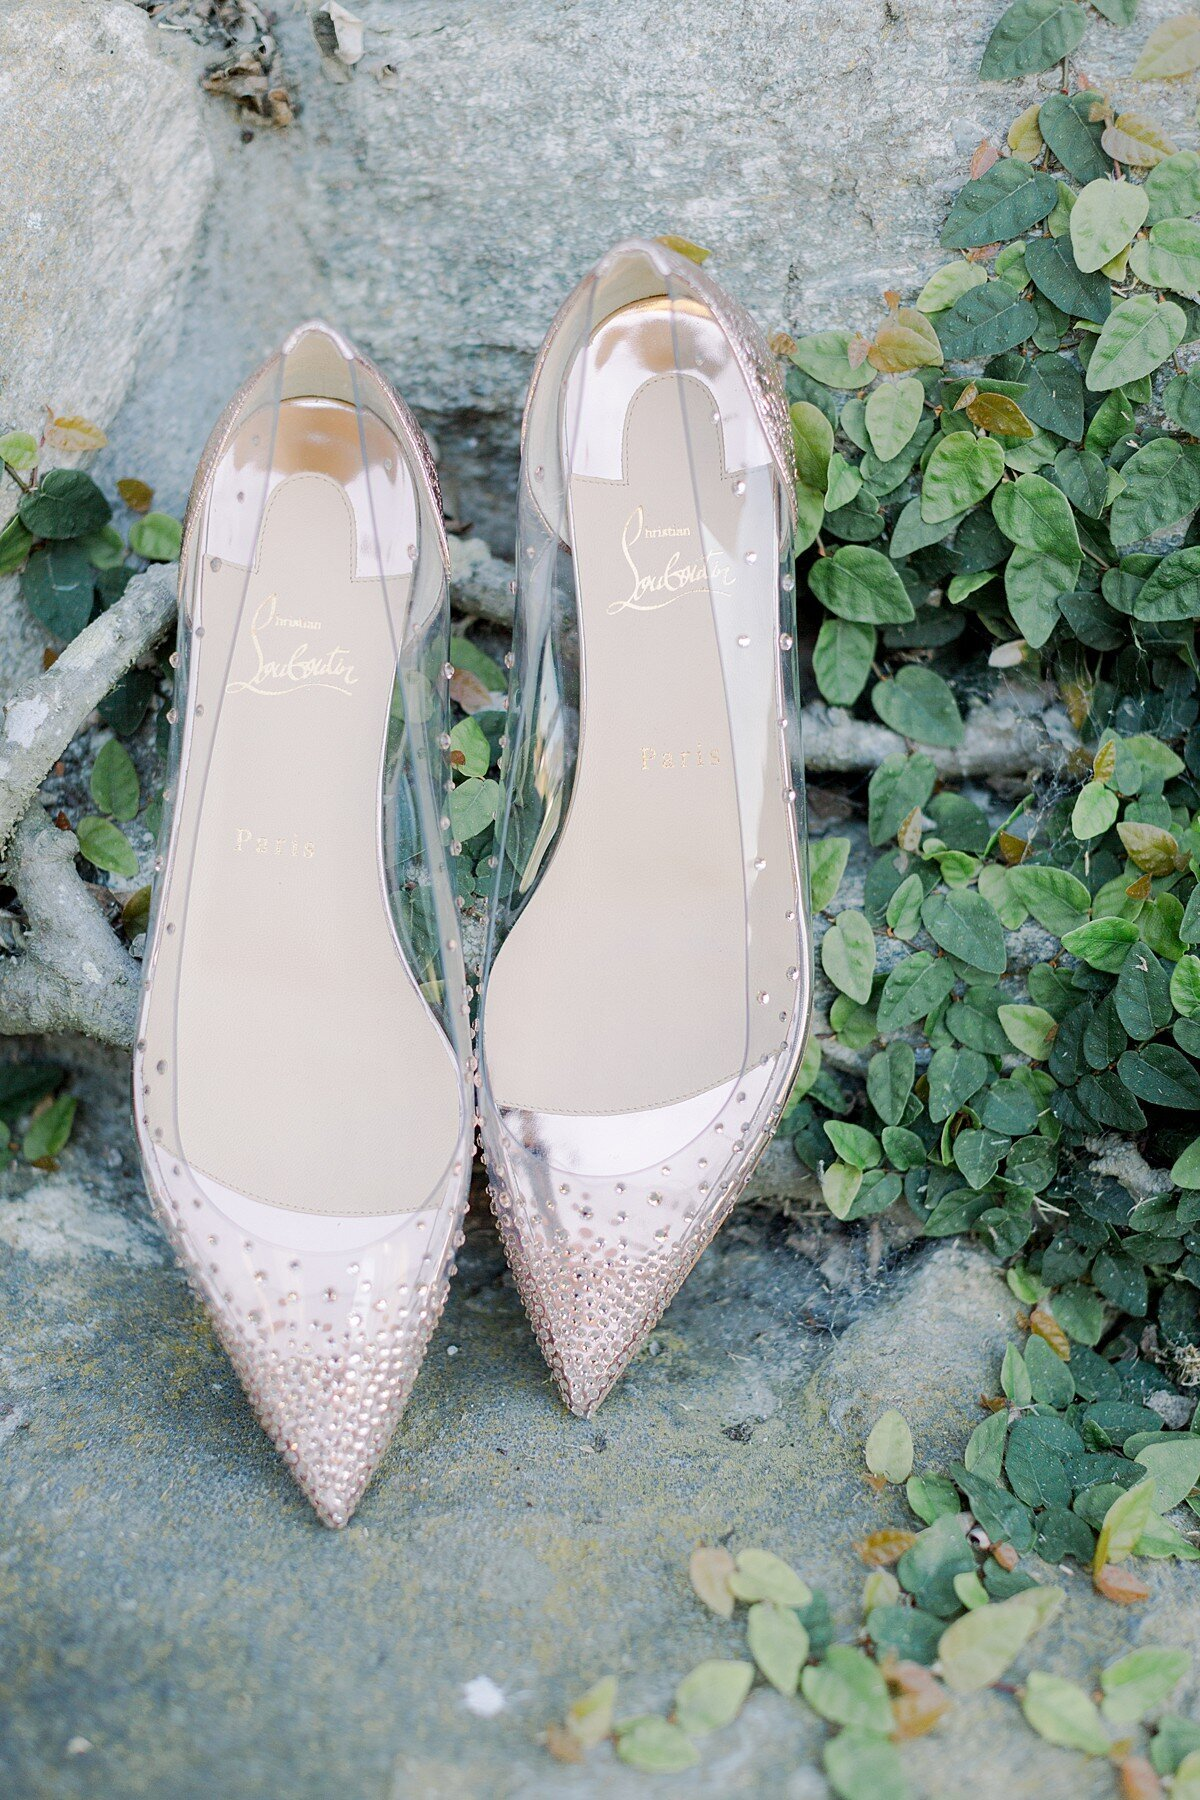 christian louboutin wedding shoes at the Lodge at Torrey Pines